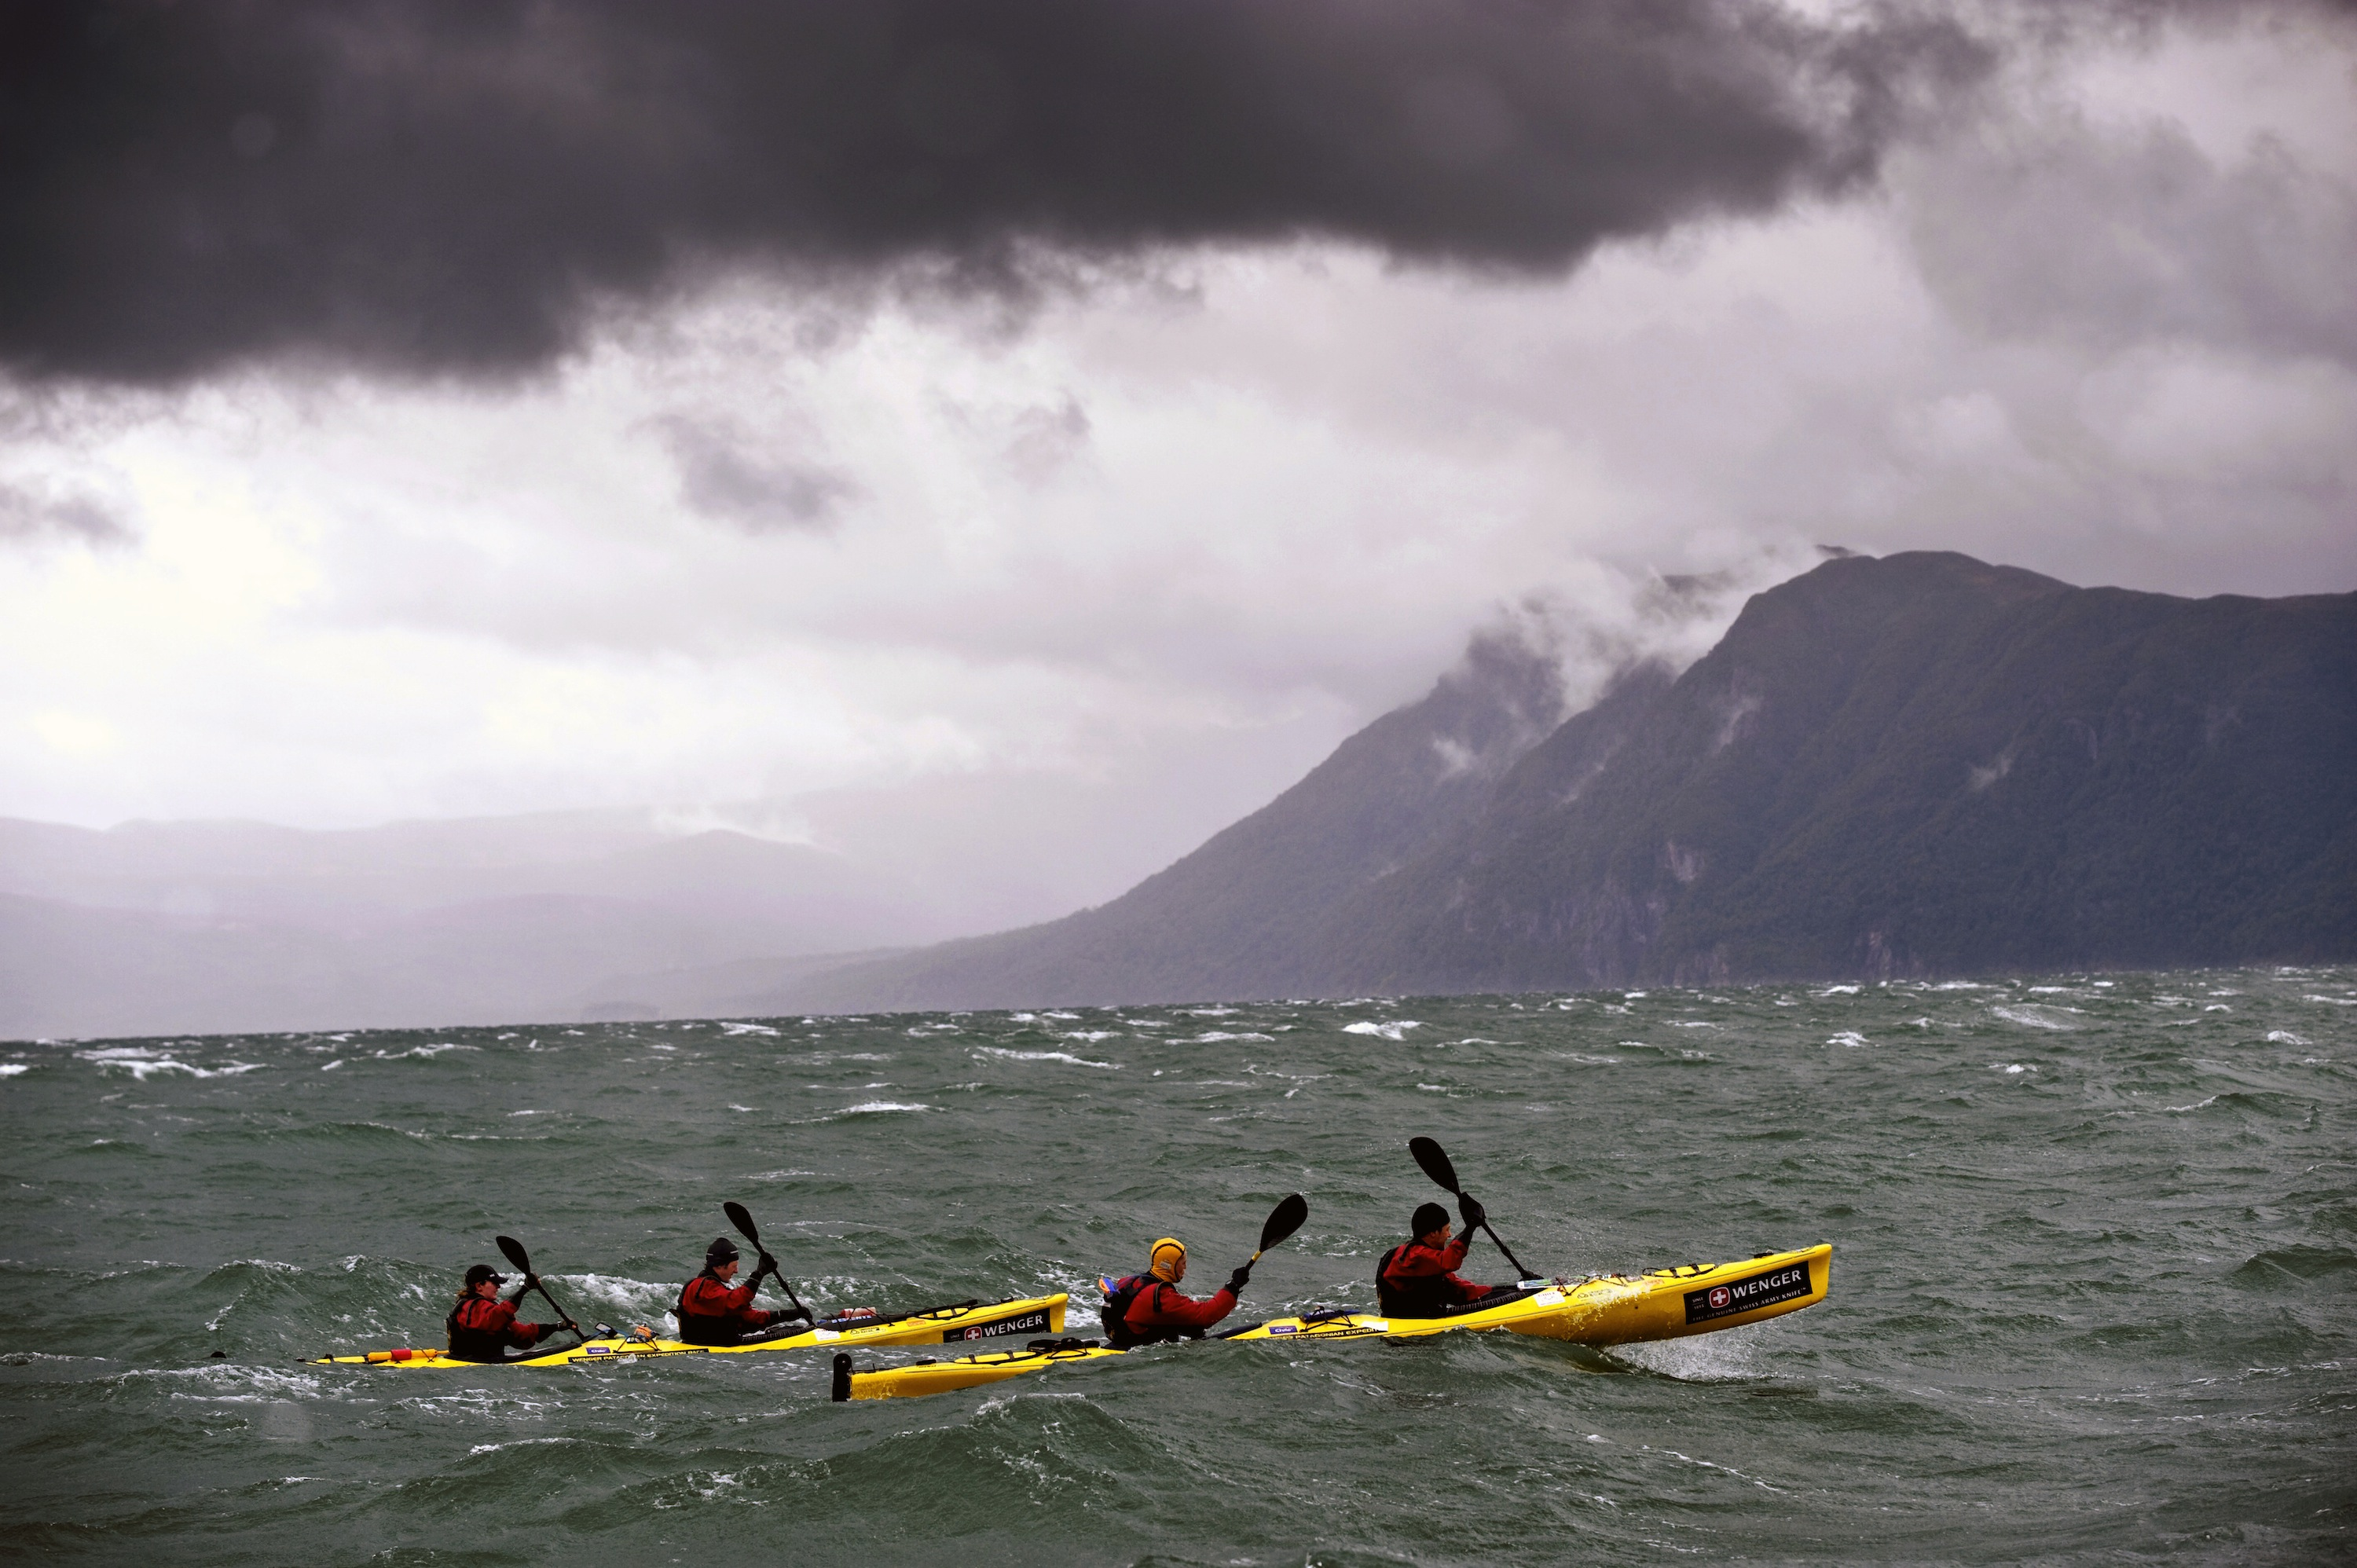 Patagonian Expedition Race